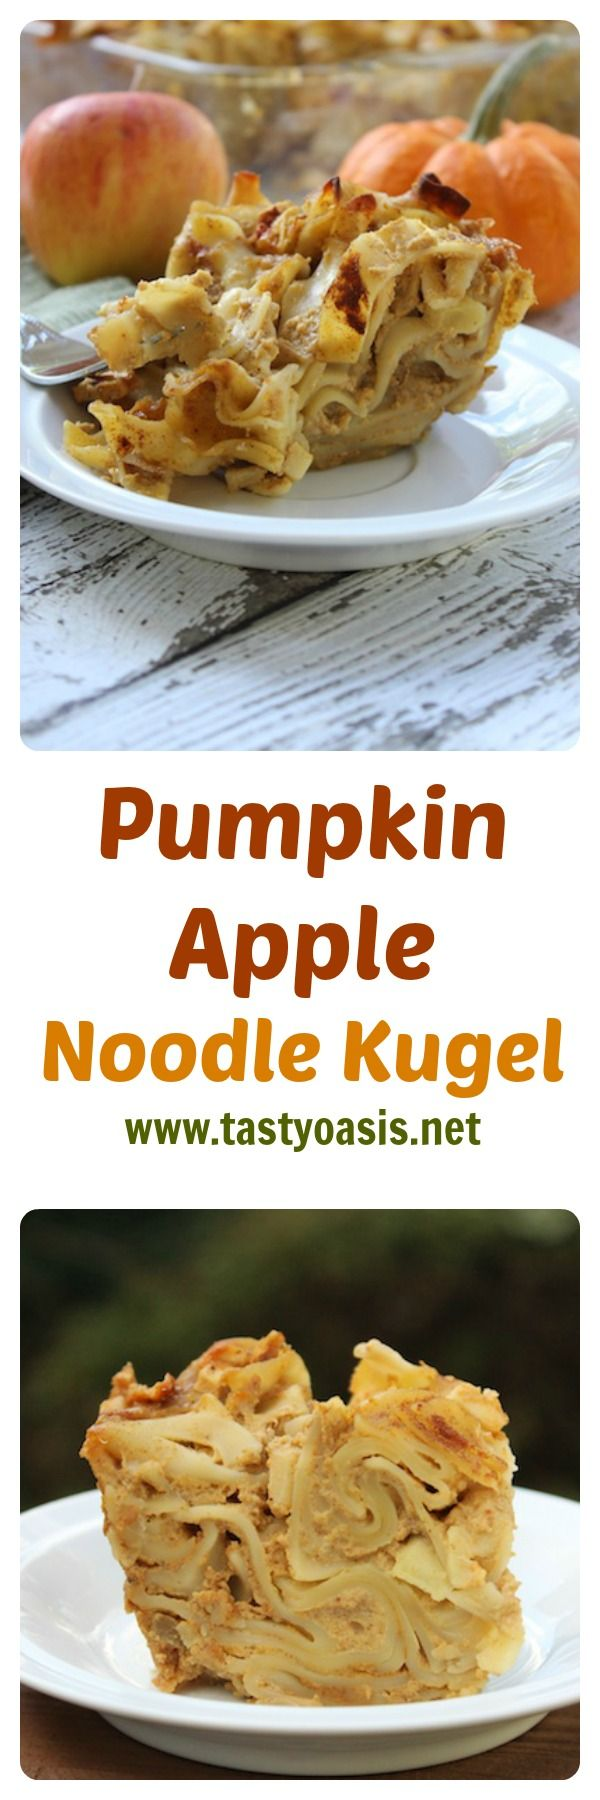 This Pumpkin Apple Noodle Kugel is a warm and creamy pudding that includes all the best flavors of fall. Easy to prepare, it's a non-traditional take on a Jewish holiday favorite, and is perfect for breakfast, afternoon tea and especially dessert. The crunchy noodles on top are hard to resist, while the insides are decadent and comforting. | www.tastyoasis.net